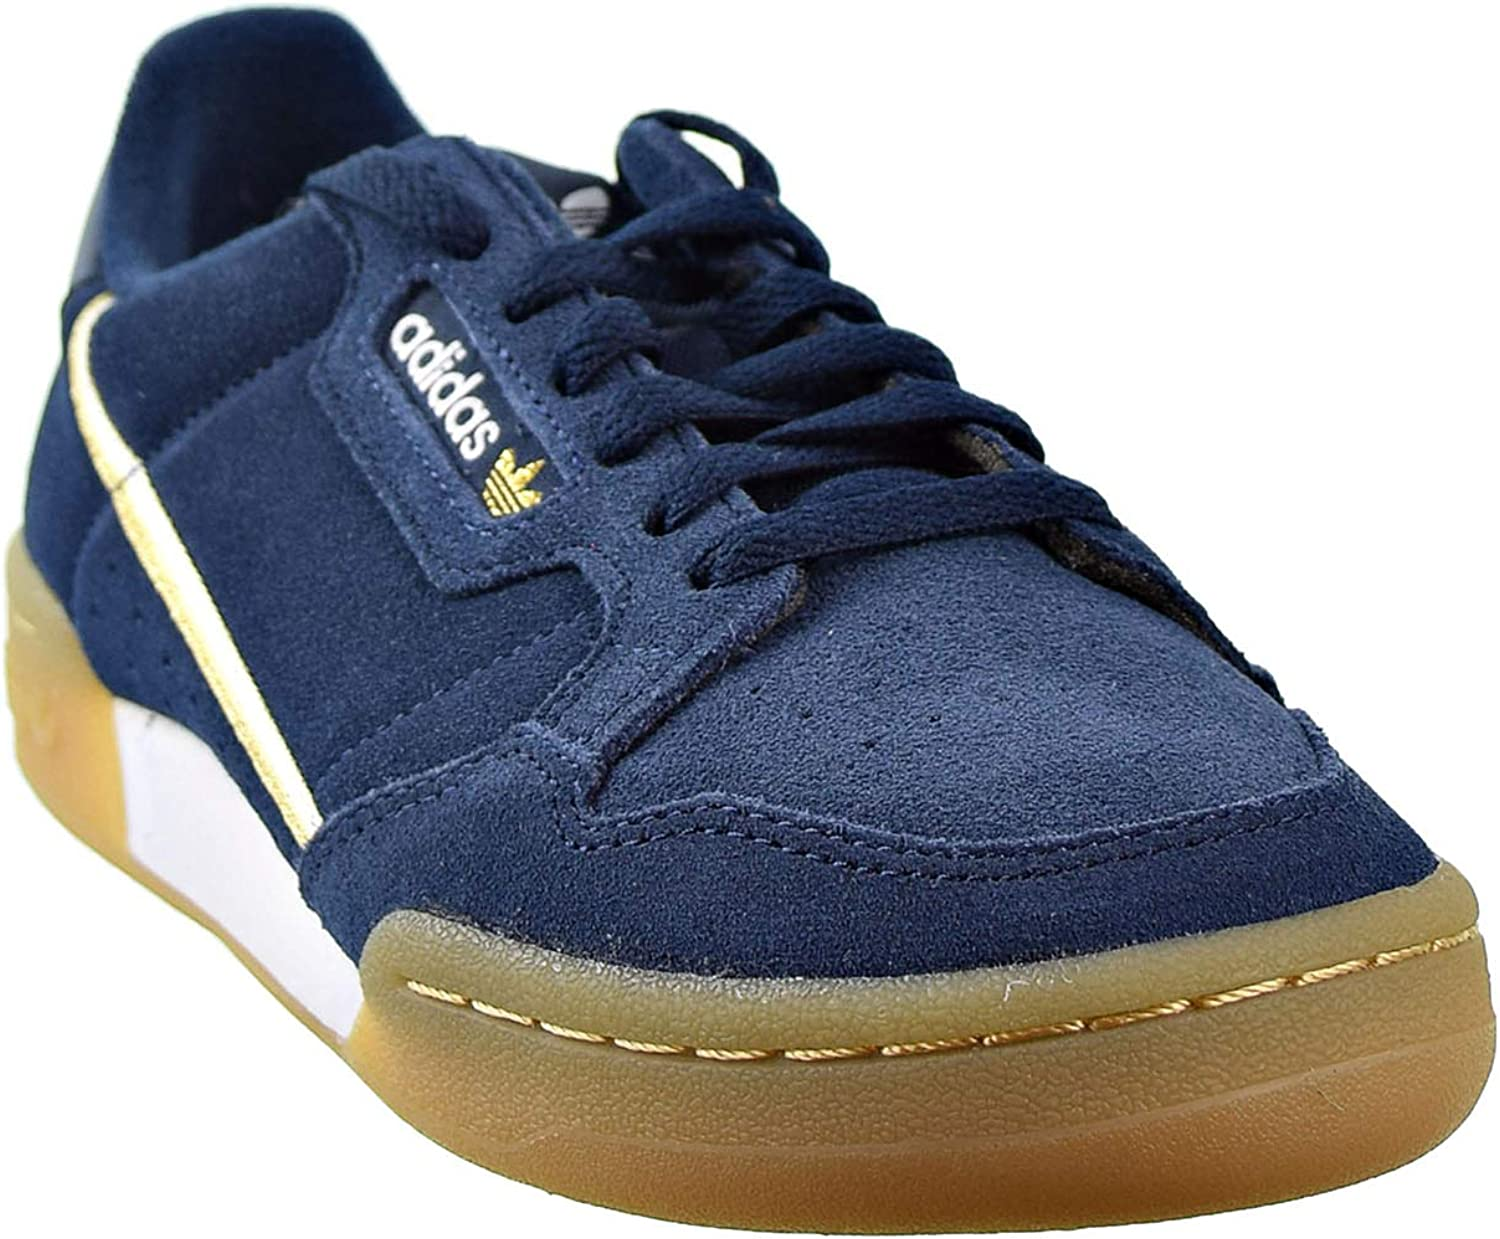 adidas Continental Herren 80 Schuhe Colligiate Navy Cloud White Gold Metallic